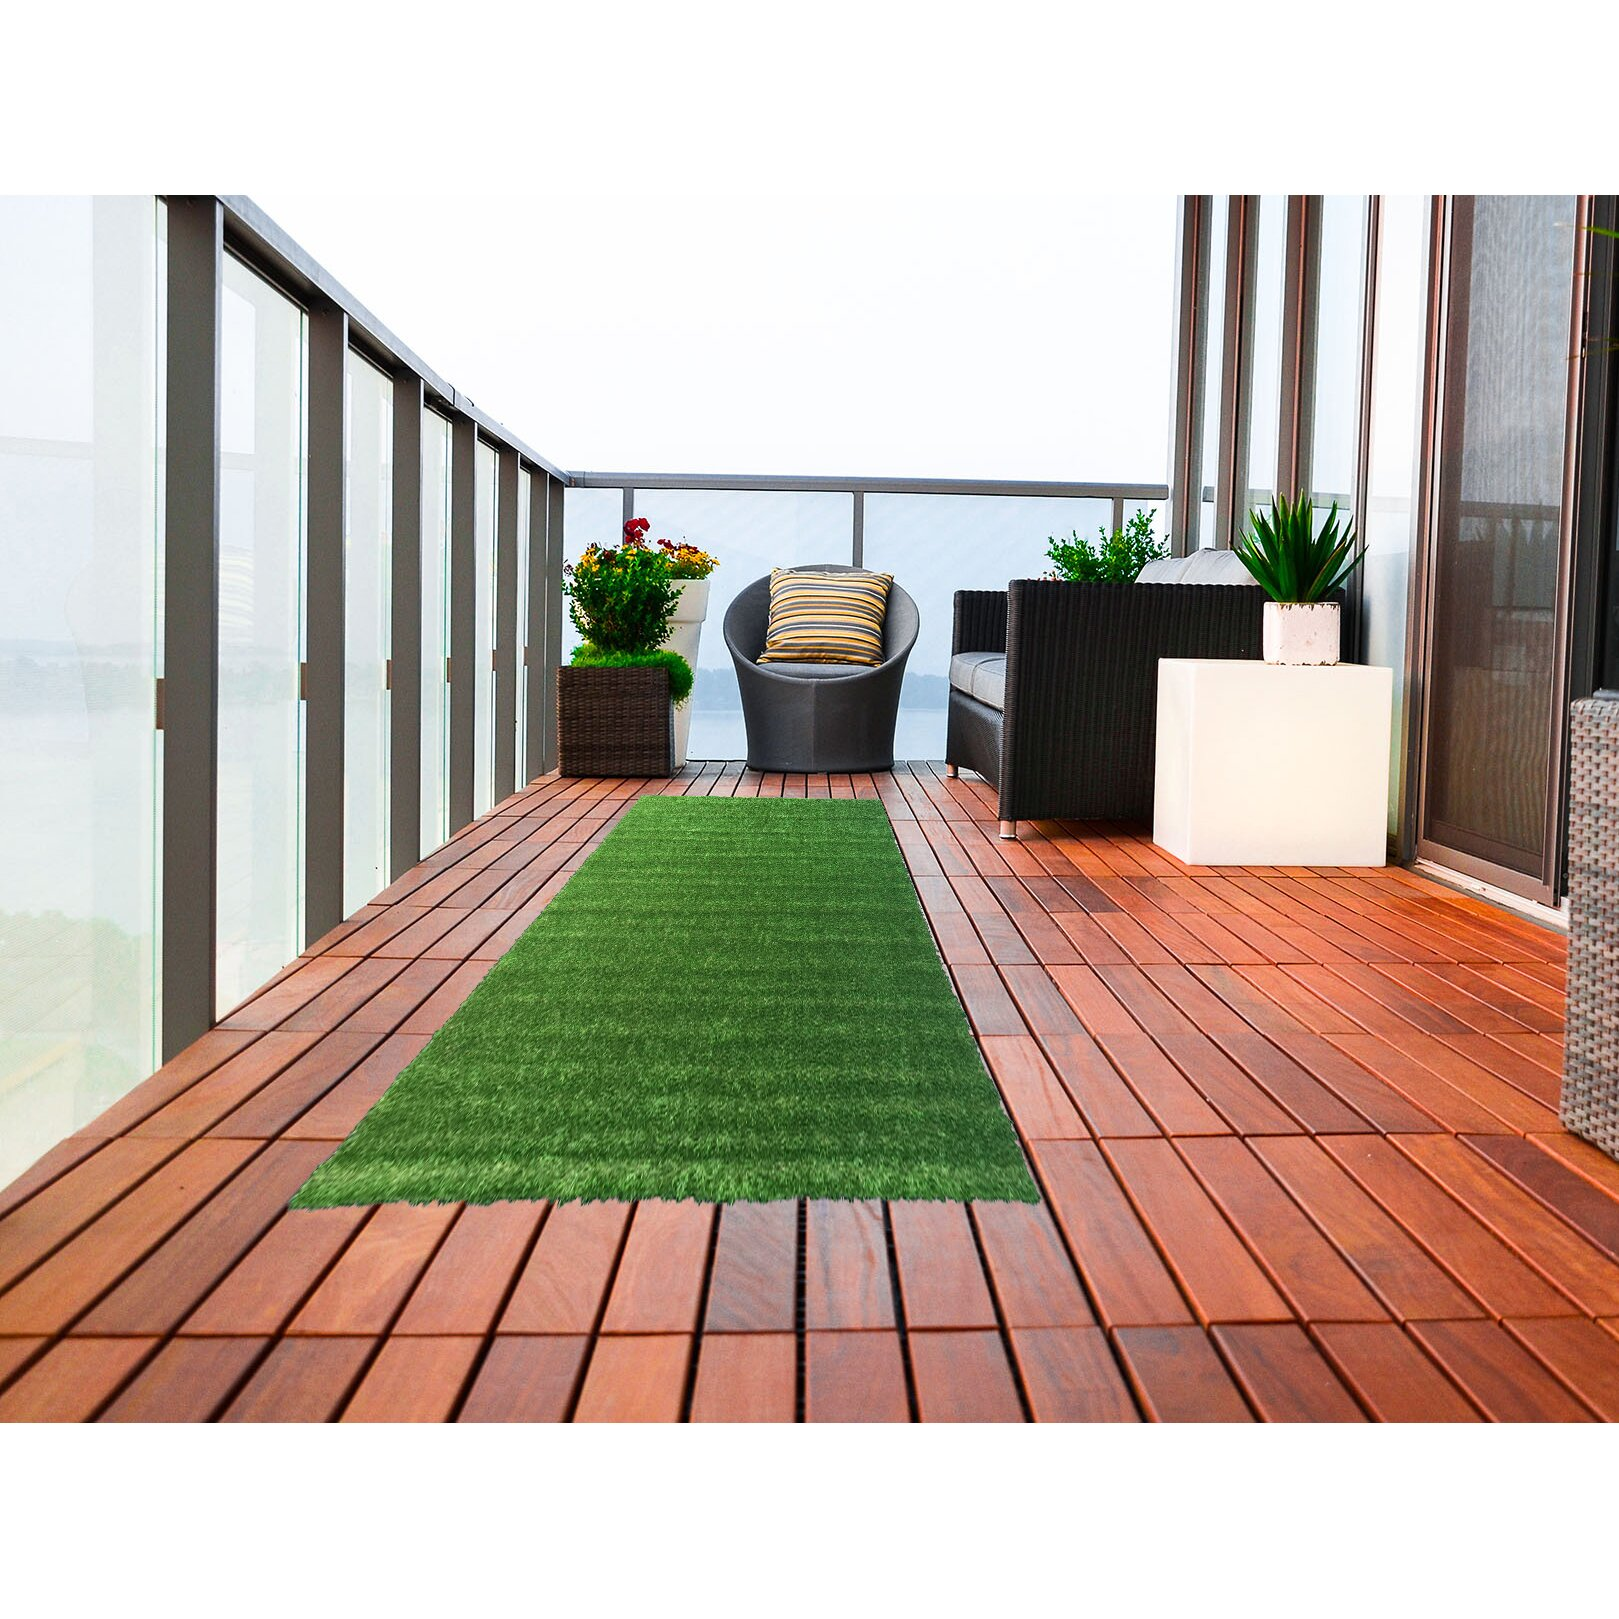 Indoor grass rug roselawnlutheran for Indoor outdoor carpet green